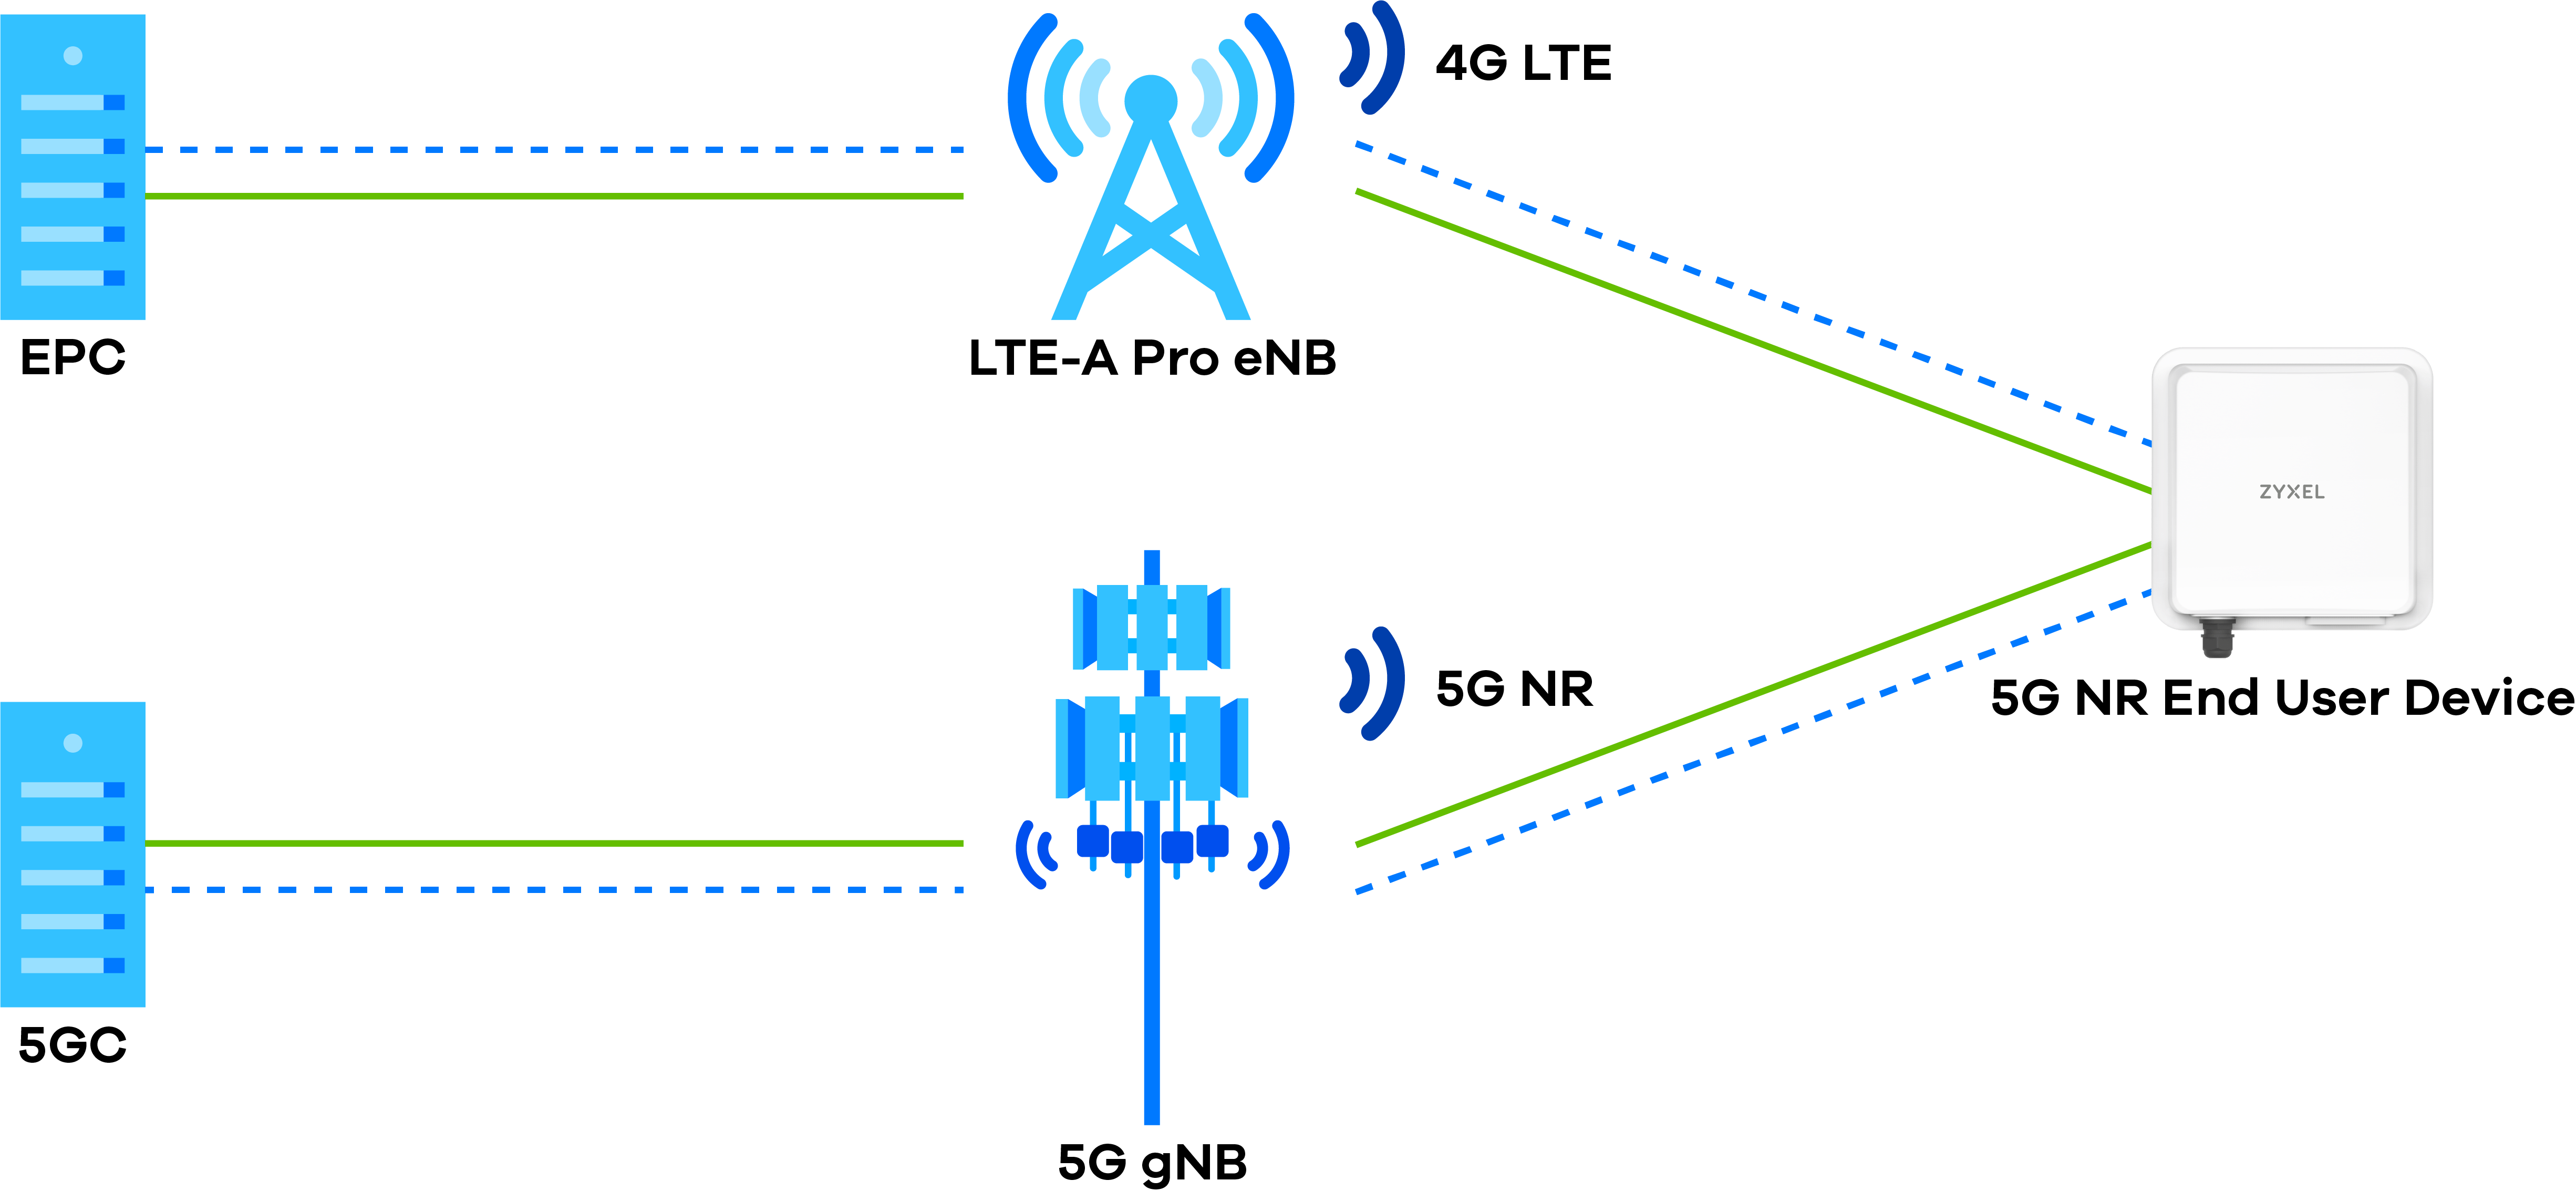 Zyxel 5G NR Standalone architecture